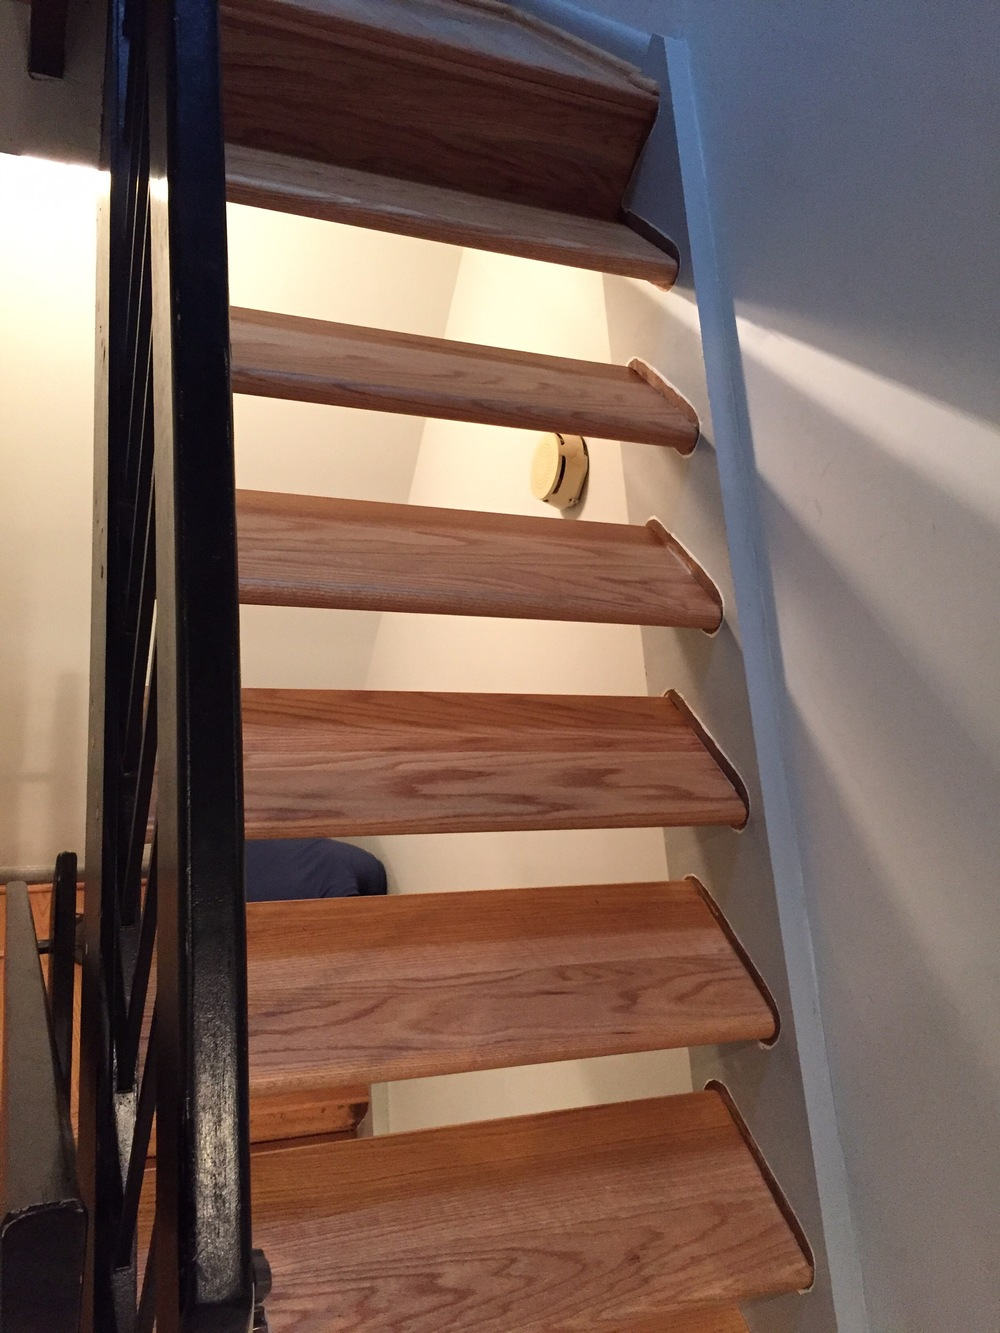 1 - Custom Oak Floating Stairs.jpg